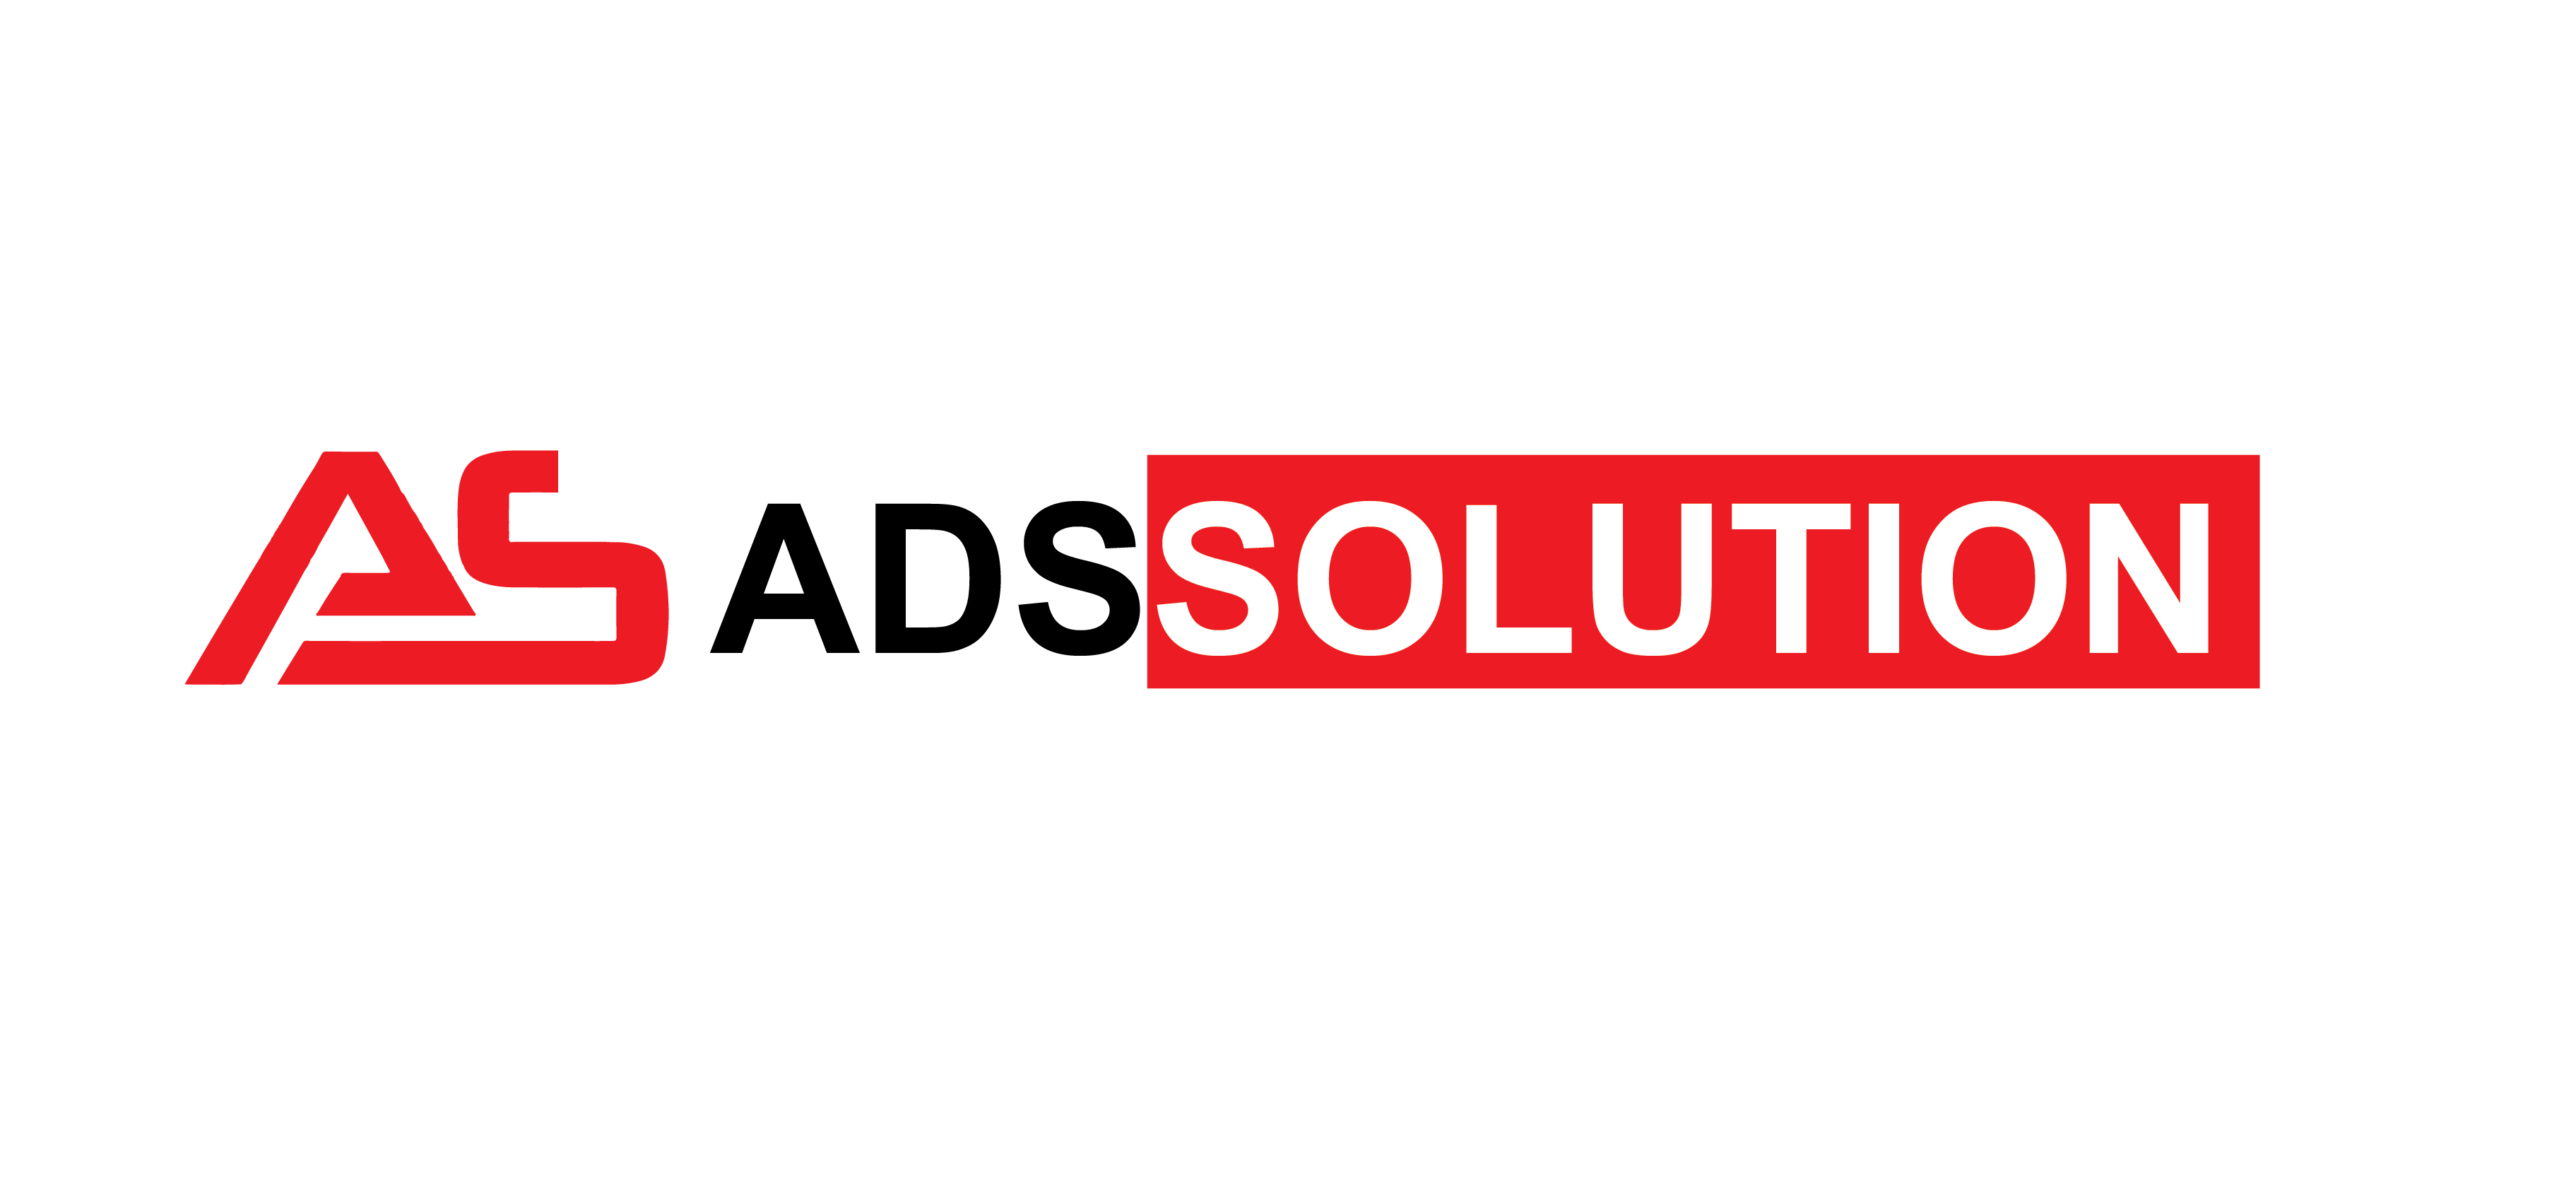 ADS SOLUTION